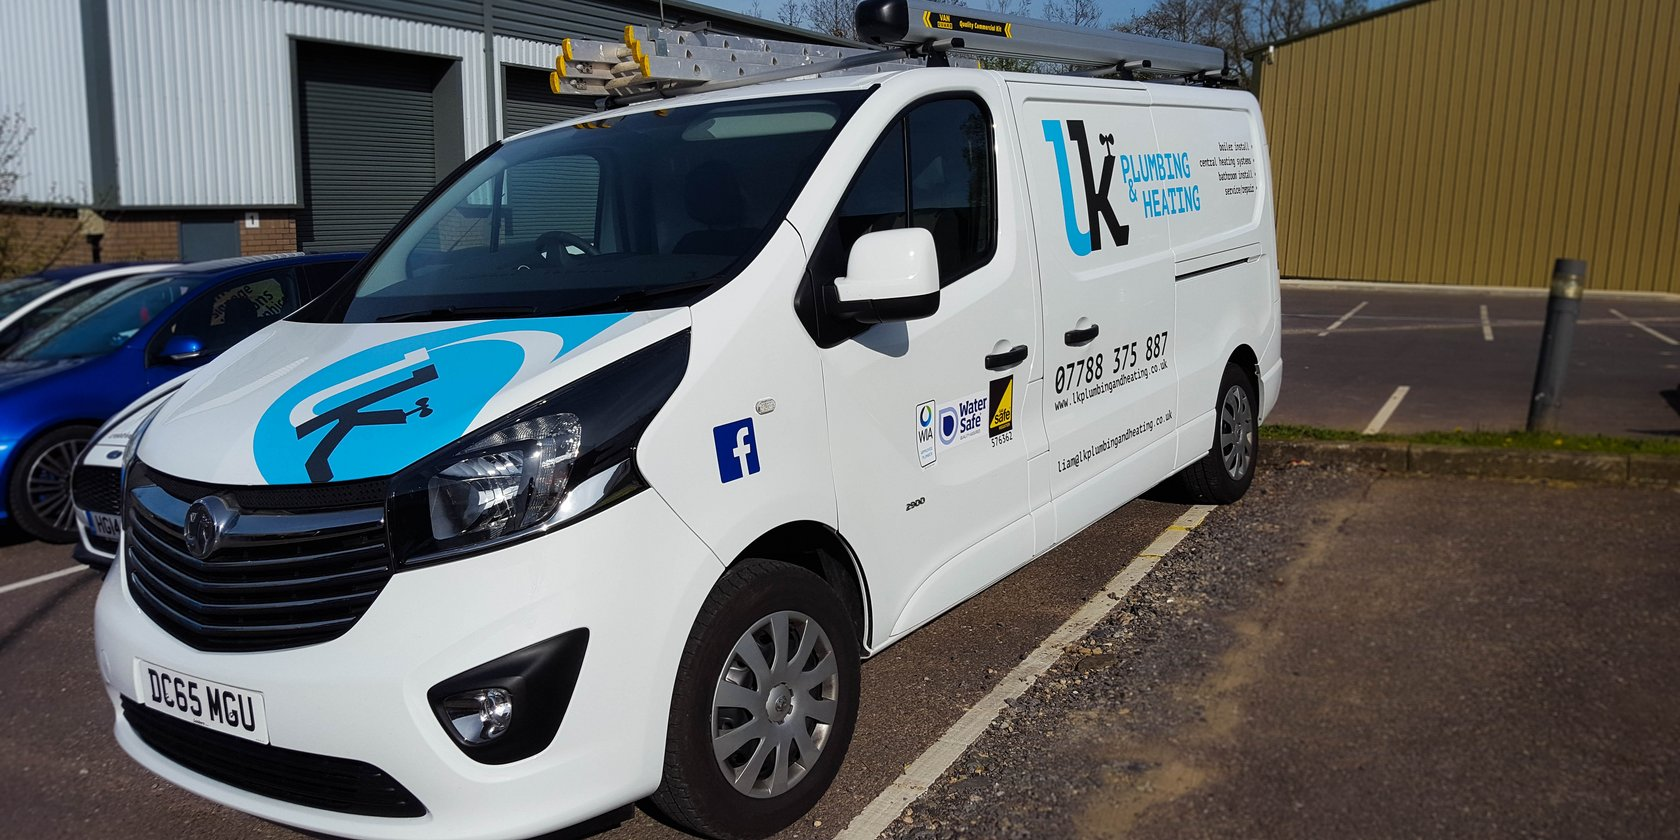 LK Plumbing Vehicle Graphics